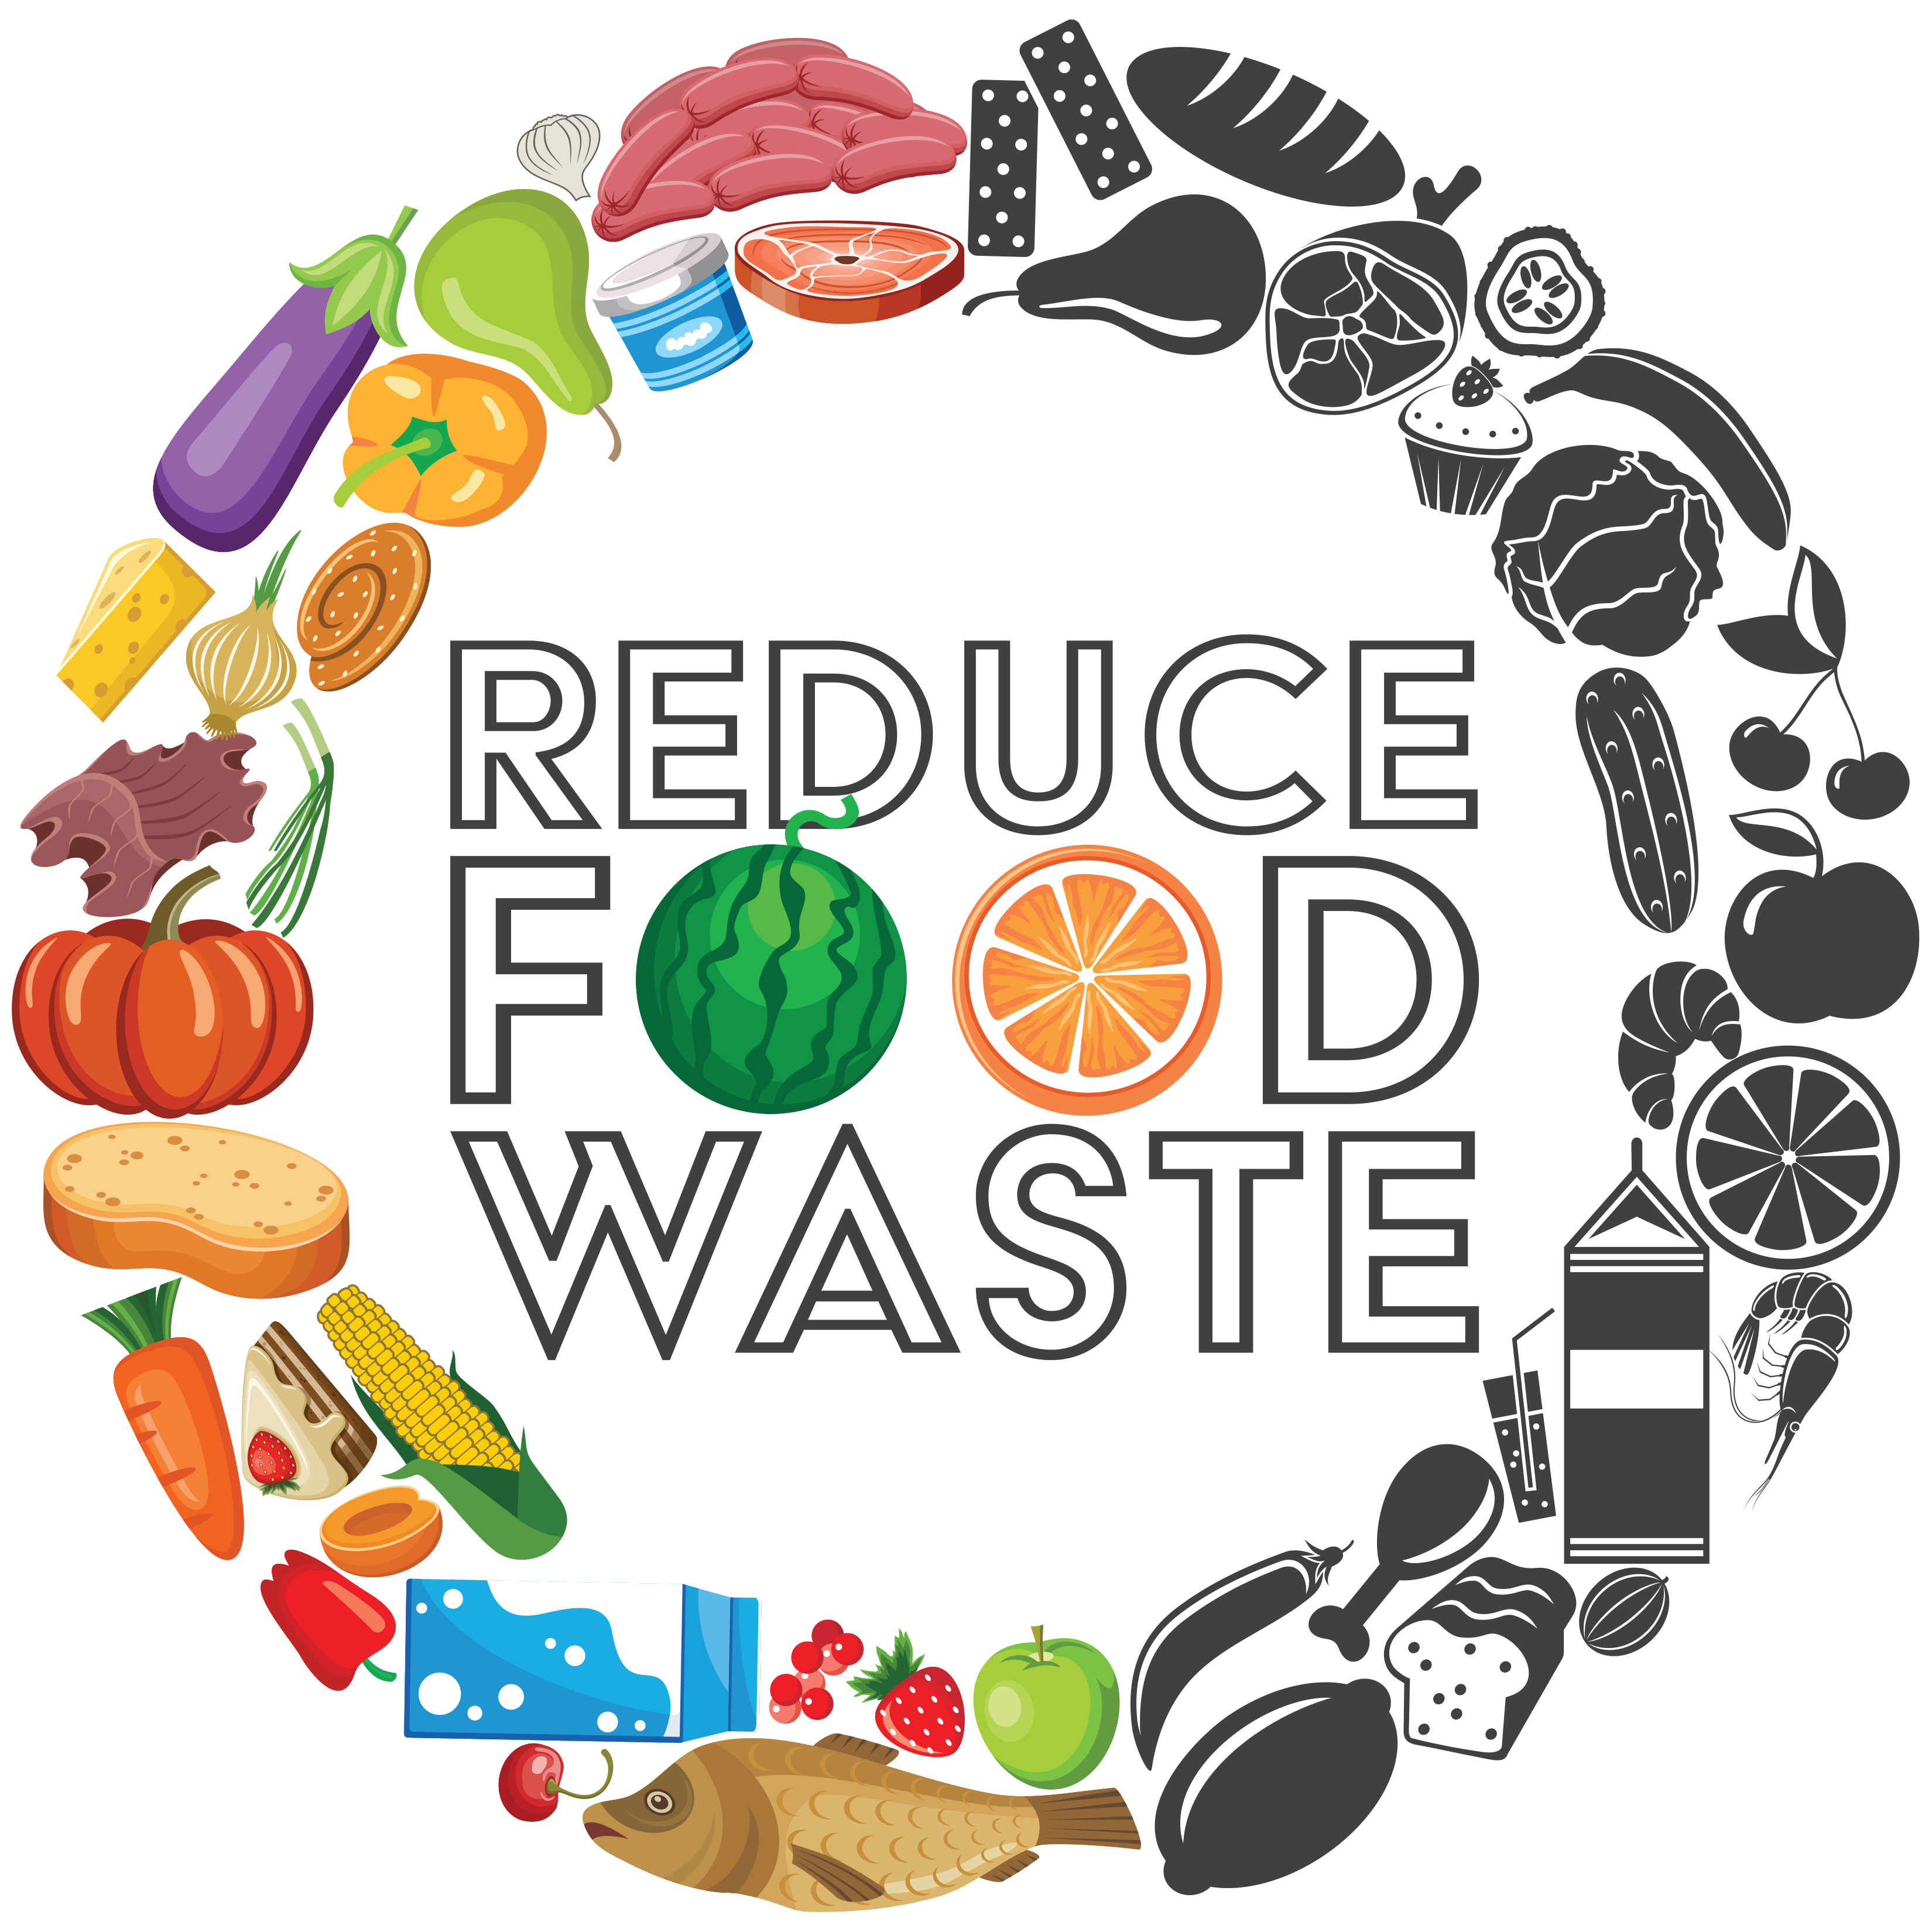 foodwaste reduce director clipart free directory clipart